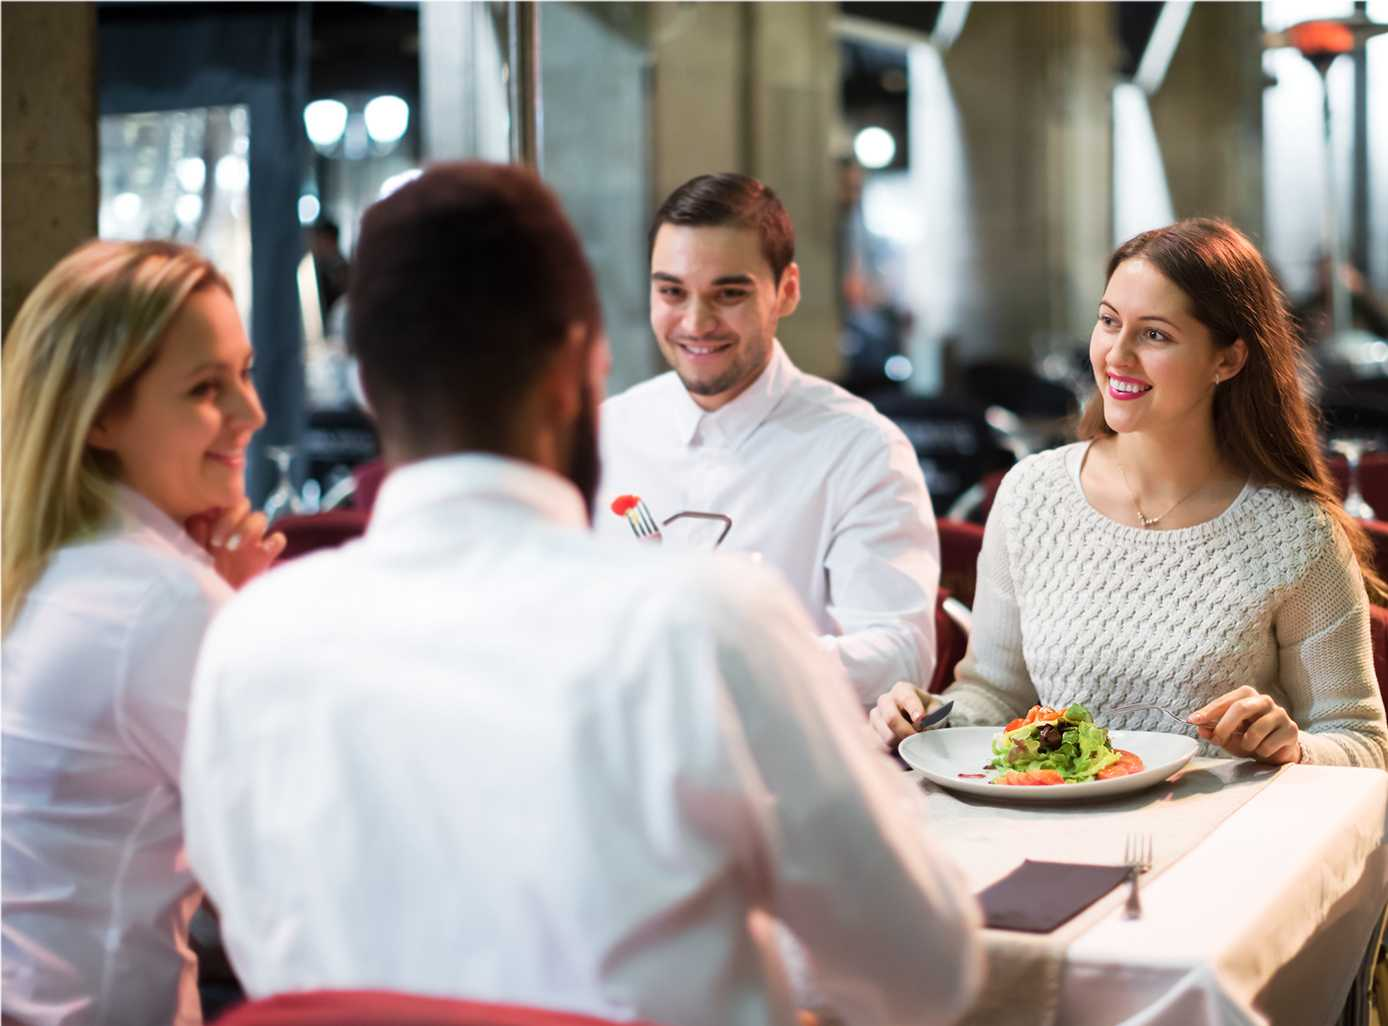 Two young couples happily eating out